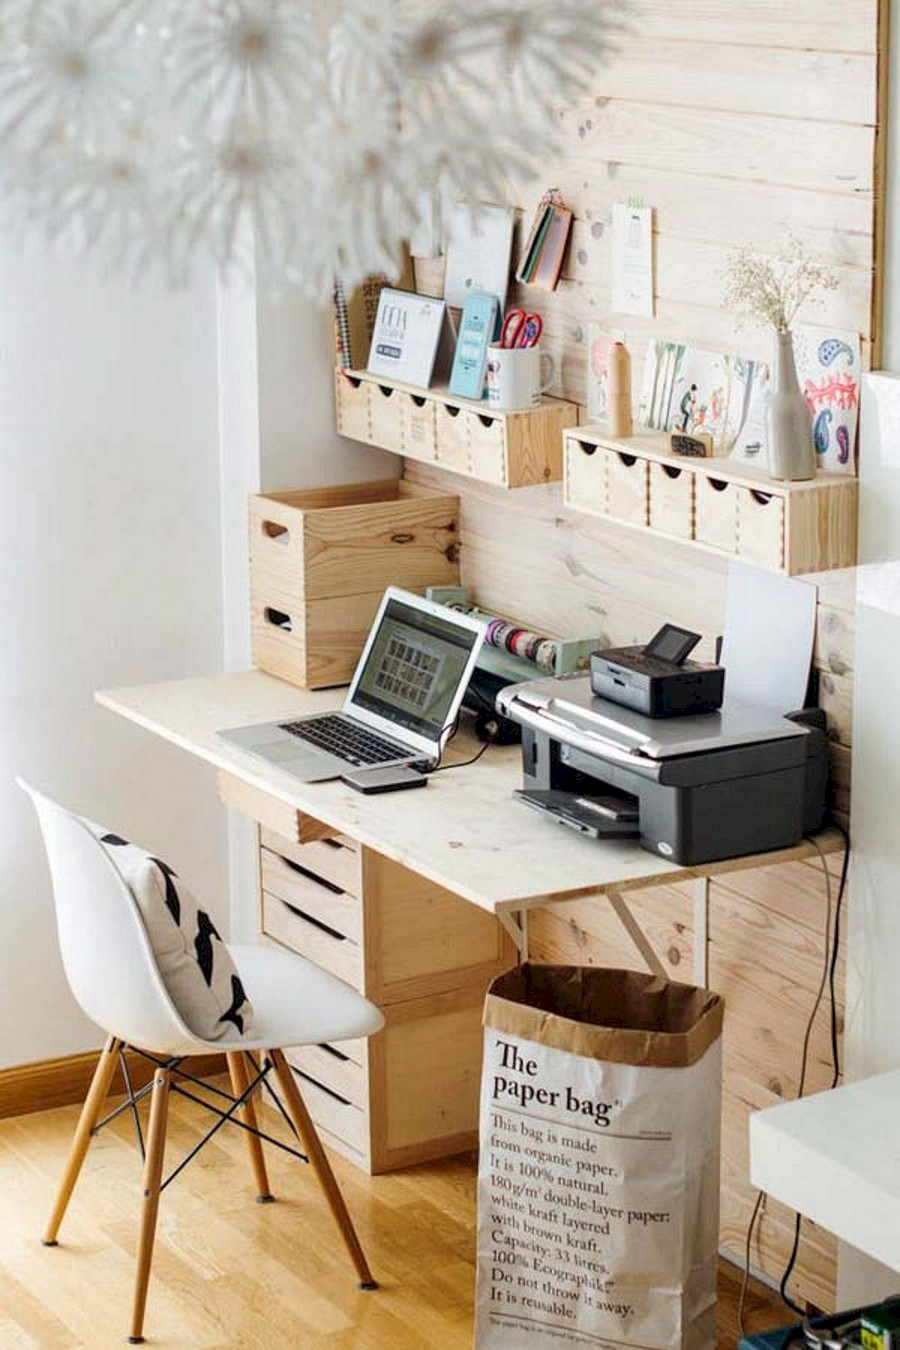 2-home-office-interior-design-ideas-inspiring-beautiful-cozy-work-area-light-wood-rustic-country-eco-style-shelves-handmade-drawers-desk-printer-laptop-boxes-storage